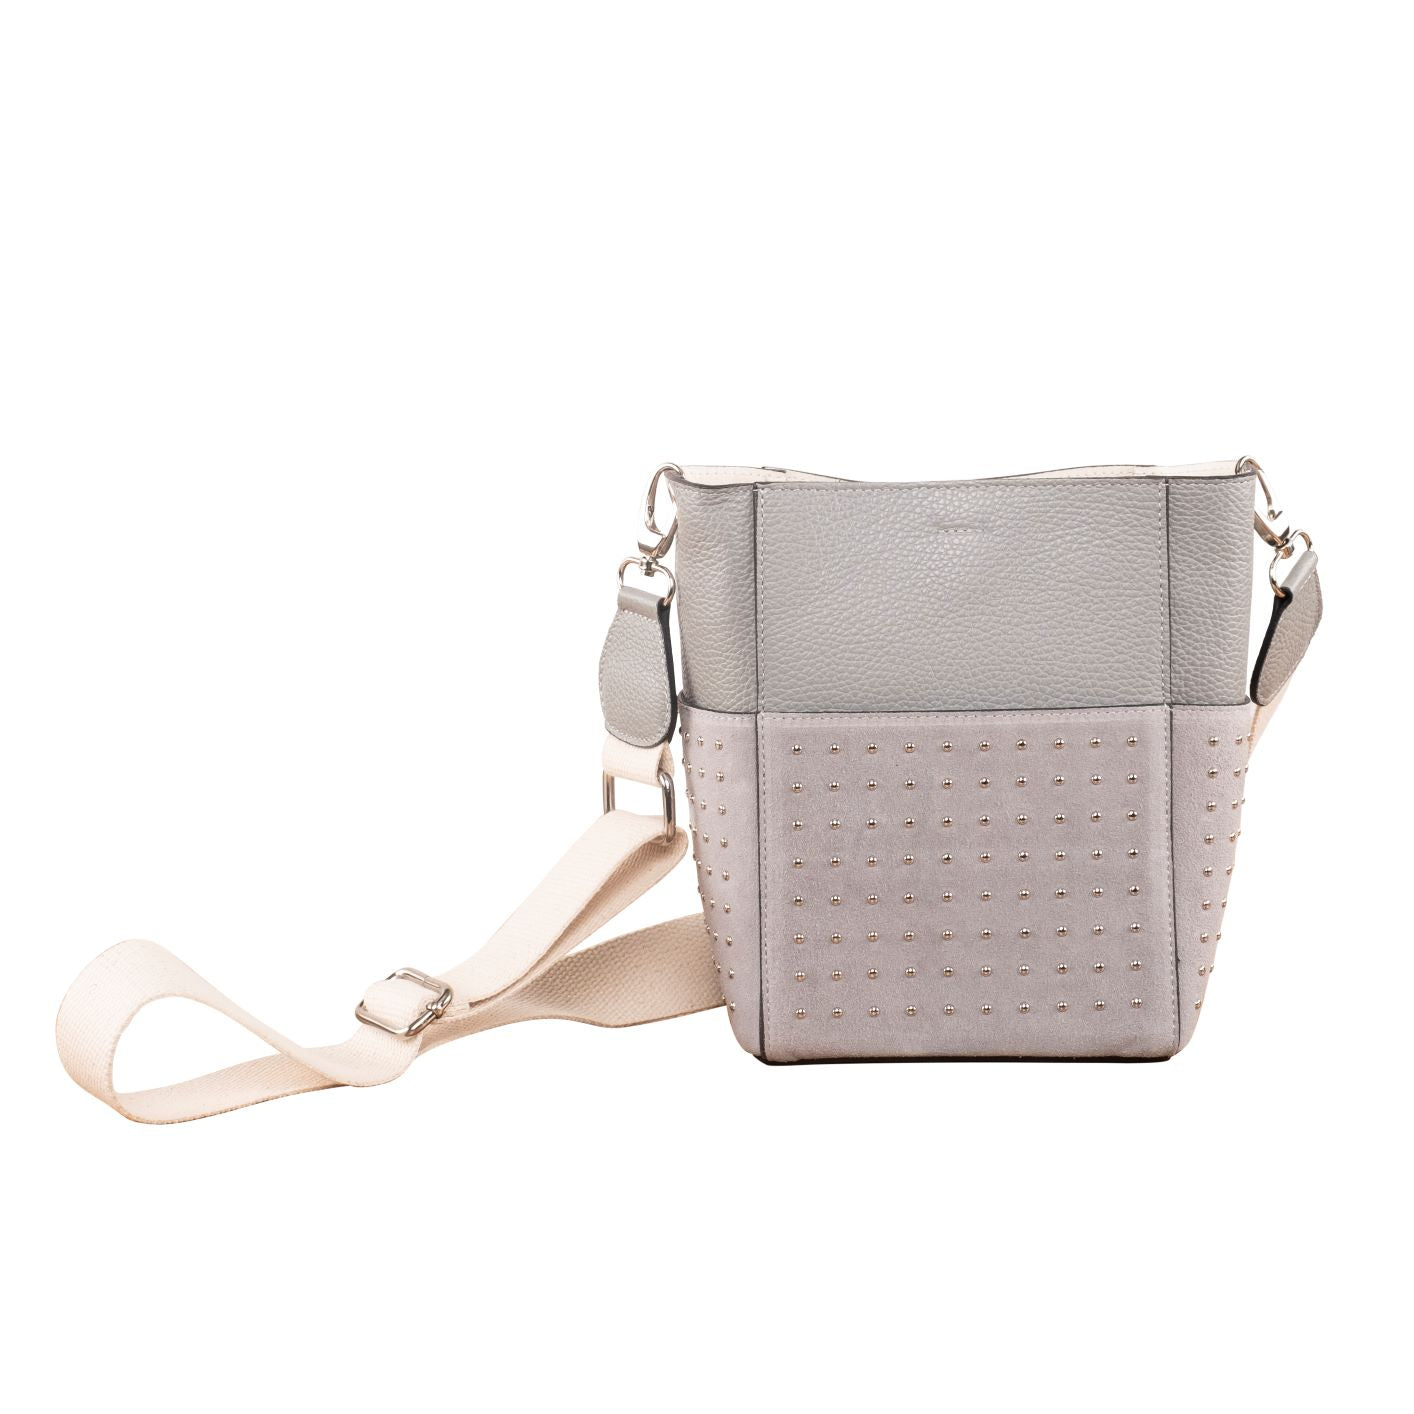 The LADY STUD CROSSBODY LEATHER BAG ( GREY )